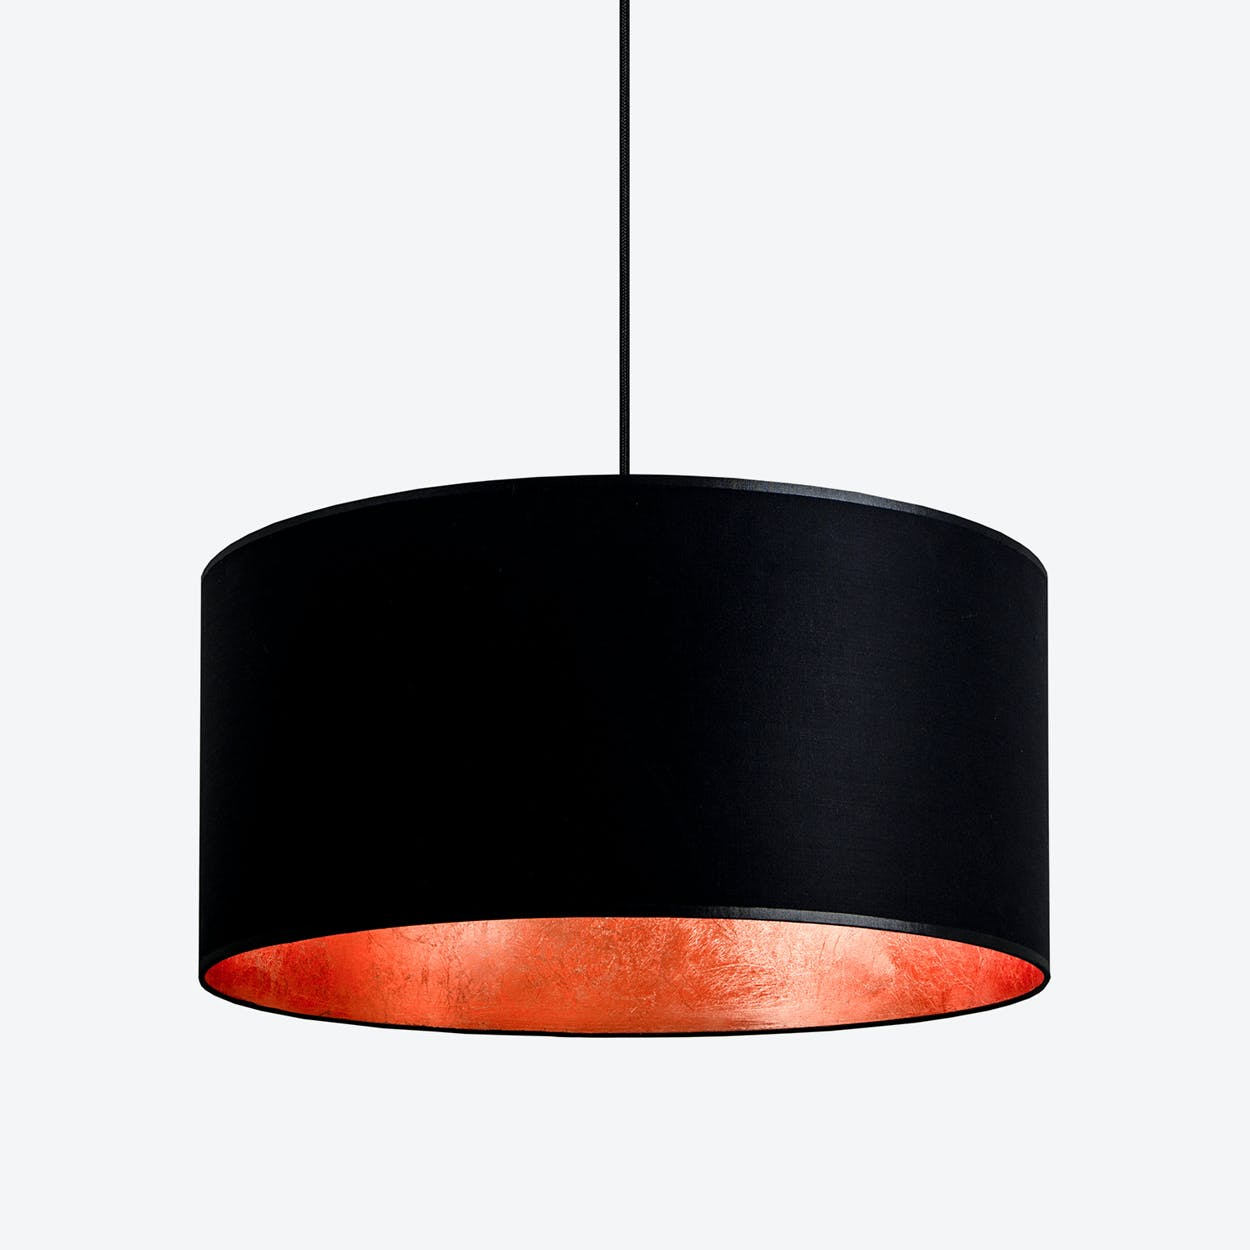 MIKA XL Single Pendant Light in Black with Copper Leaf